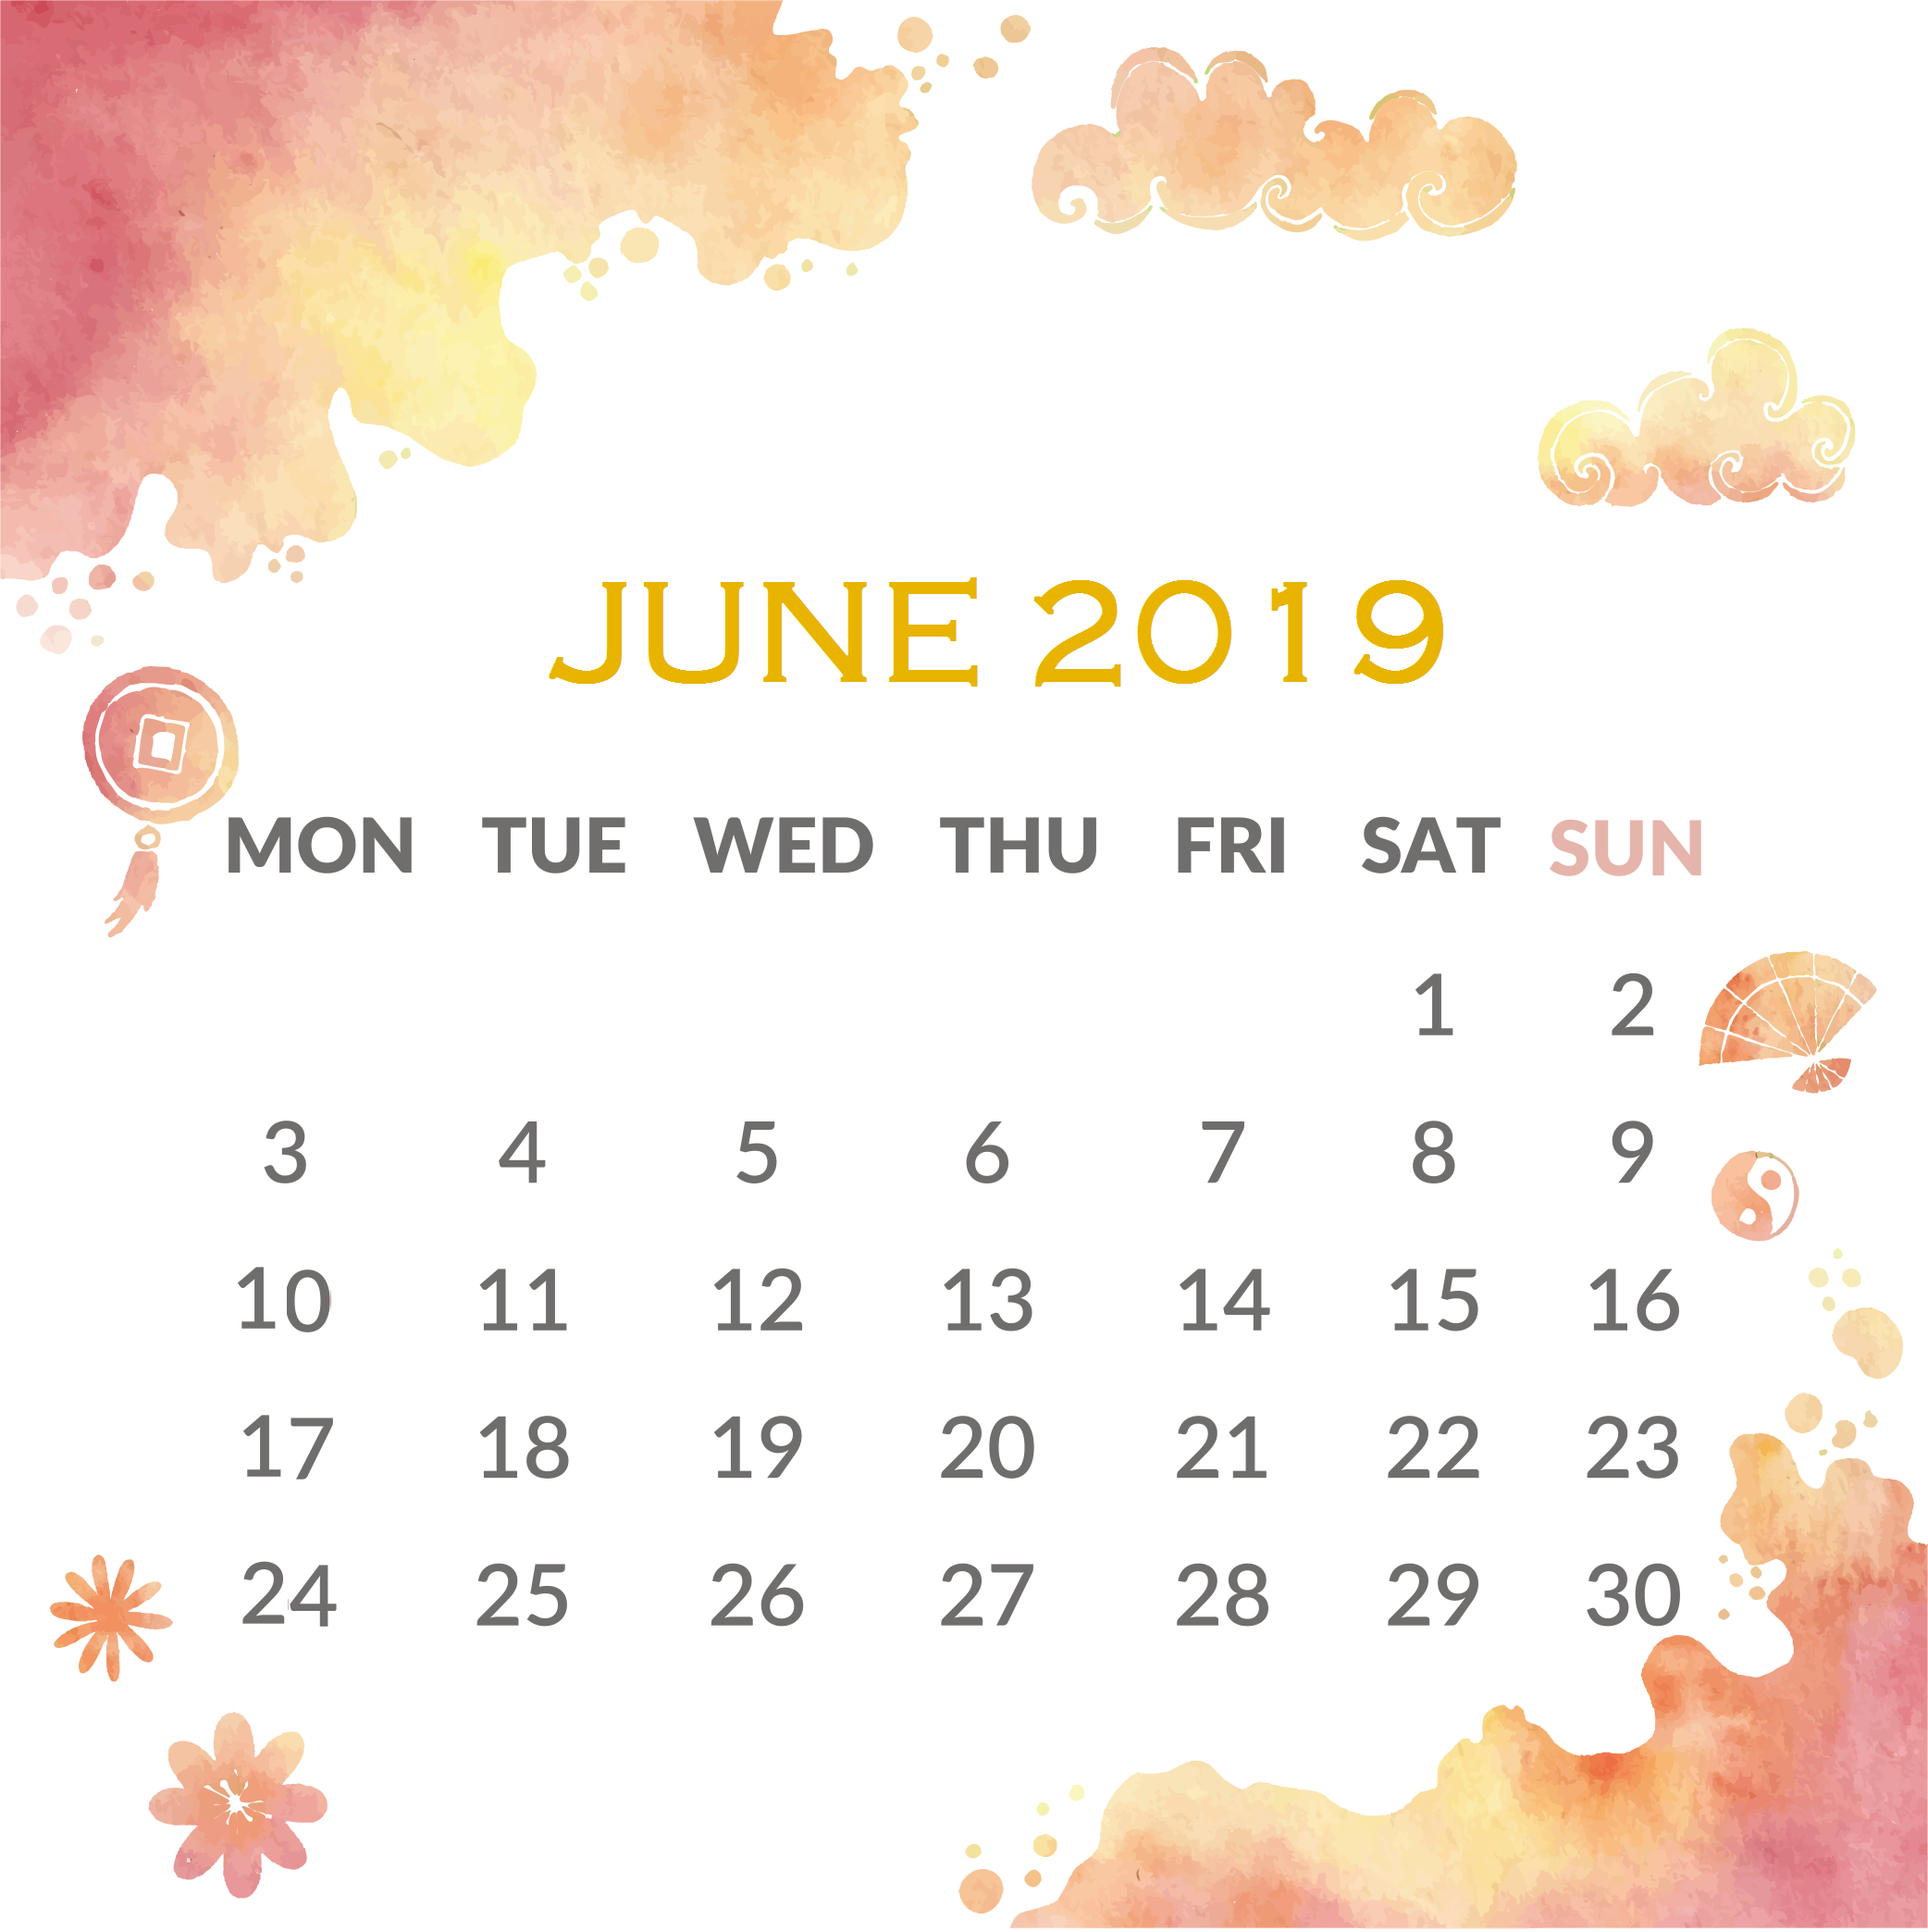 Print June 2019 Calendar for Wall